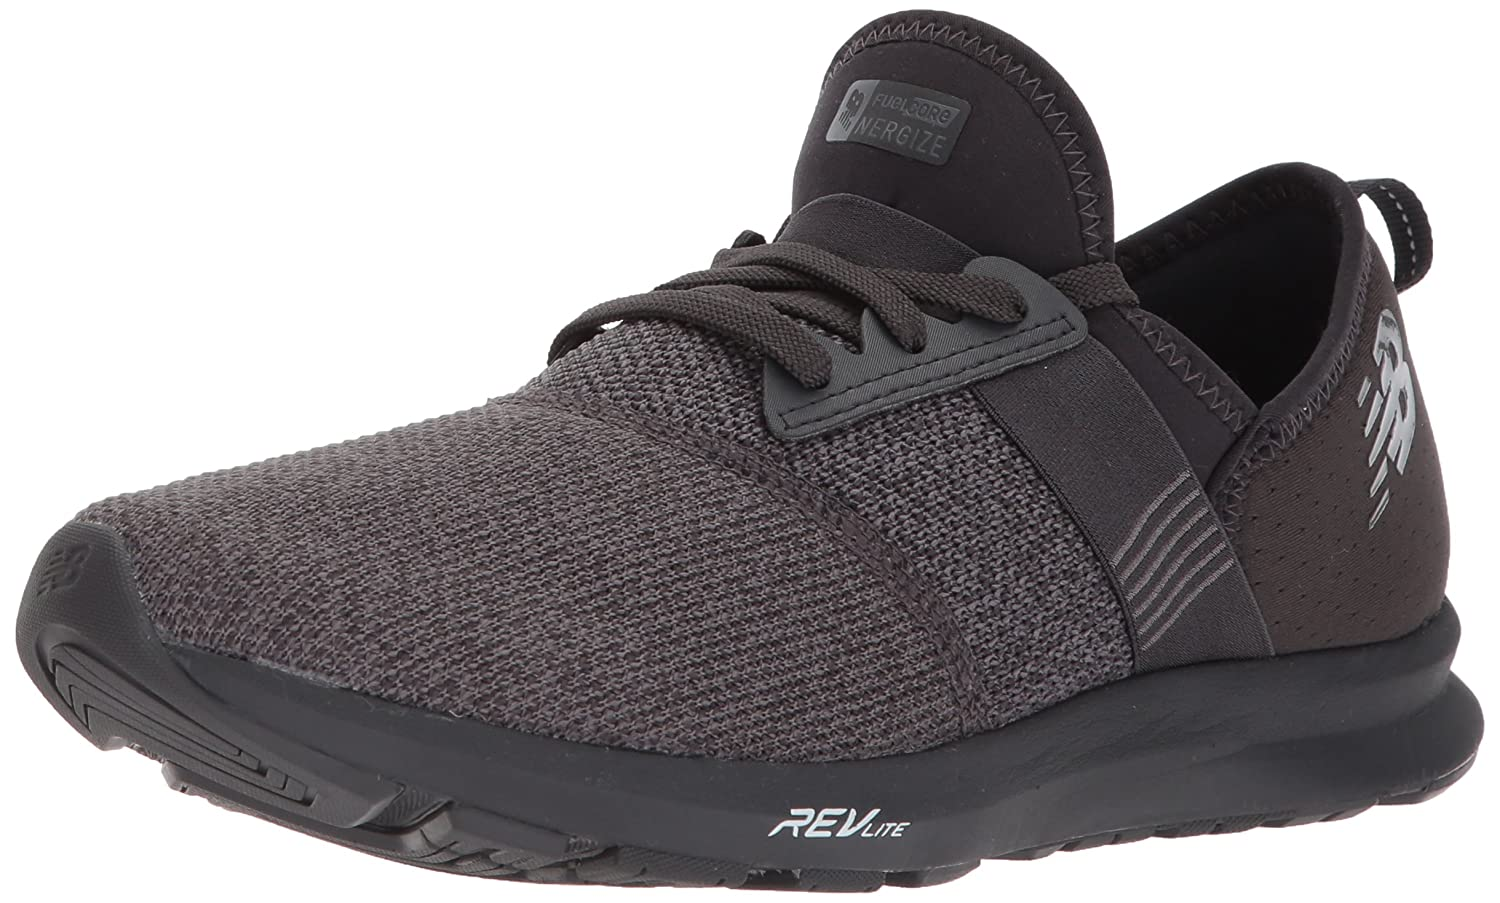 New Balance Women's Nergize V1 FuelCore Cross Trainer B005ATOIAY 12 D US|Black